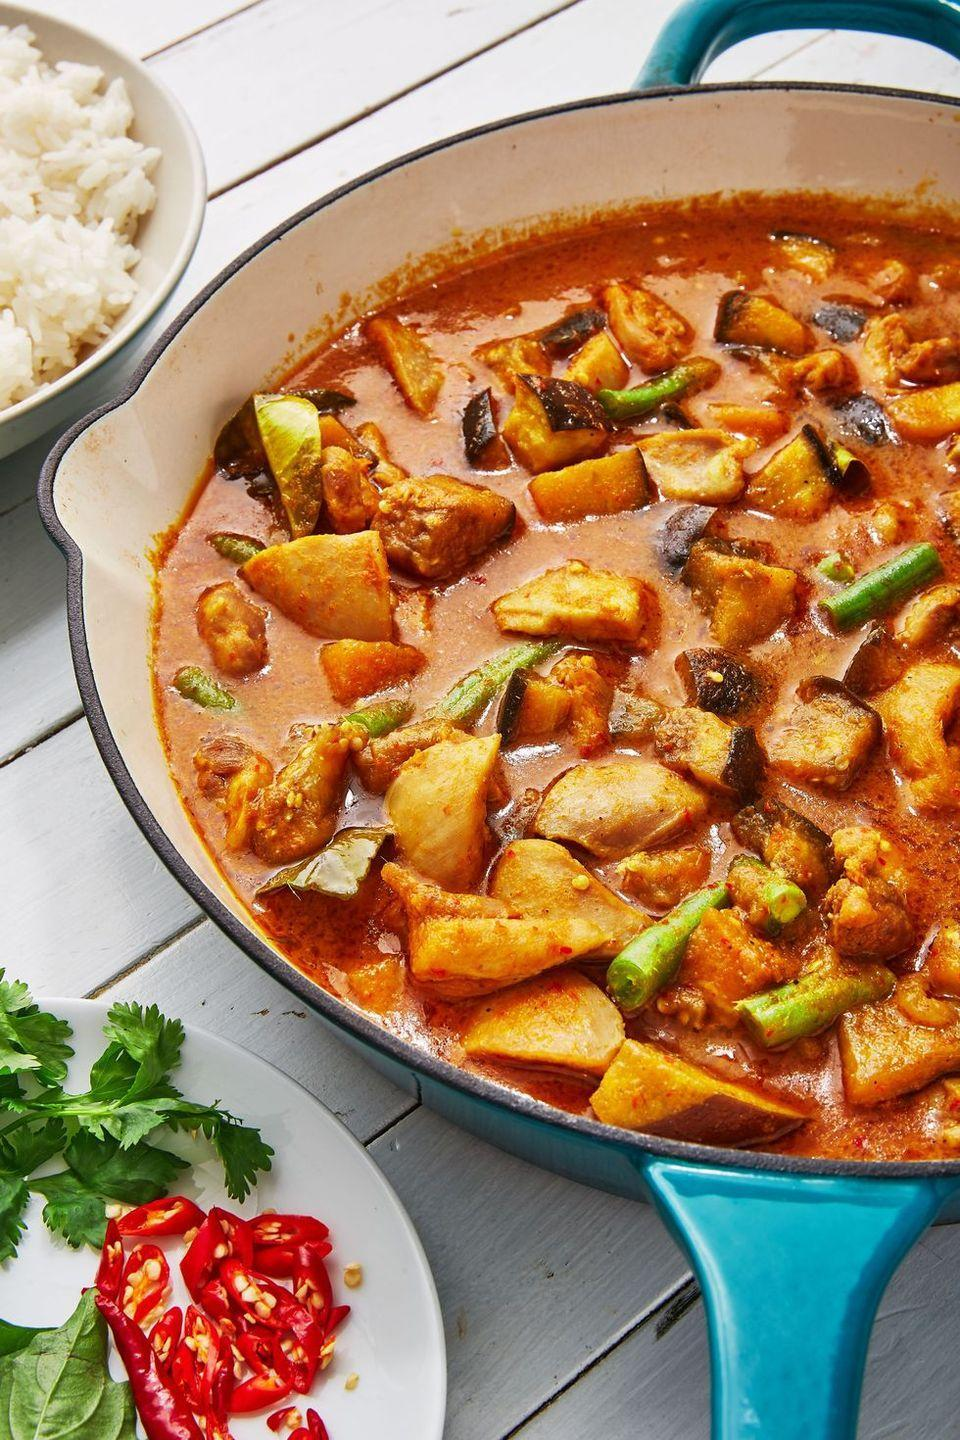 """<p>This Thai Red Curry recipe is SO flavourful and we can't wait to make this recipe everyday for like, the rest of our lives. Yep, it's that good. Packed with all the good stuff: <a href=""""https://www.delish.com/uk/cooking/recipes/a30595799/creamy-chicken-stuffed-peppers-recipe/"""" rel=""""nofollow noopener"""" target=""""_blank"""" data-ylk=""""slk:peppers"""" class=""""link rapid-noclick-resp"""">peppers</a>, <a href=""""https://www.delish.com/uk/food-news/a29424483/freezing-chilli-peppers/"""" rel=""""nofollow noopener"""" target=""""_blank"""" data-ylk=""""slk:chillies"""" class=""""link rapid-noclick-resp"""">chillies</a>, lemongrass, <a href=""""https://www.delish.com/uk/cooking/recipes/a30271089/halloumi-salad/"""" rel=""""nofollow noopener"""" target=""""_blank"""" data-ylk=""""slk:aubergine"""" class=""""link rapid-noclick-resp"""">aubergine</a> and green beans, this recipe is beyond delicious. </p><p>Get the <a href=""""https://www.delish.com/uk/cooking/recipes/a30607284/thai-red-curry/"""" rel=""""nofollow noopener"""" target=""""_blank"""" data-ylk=""""slk:Thai Red Curry"""" class=""""link rapid-noclick-resp"""">Thai Red Curry</a> recipe.</p>"""